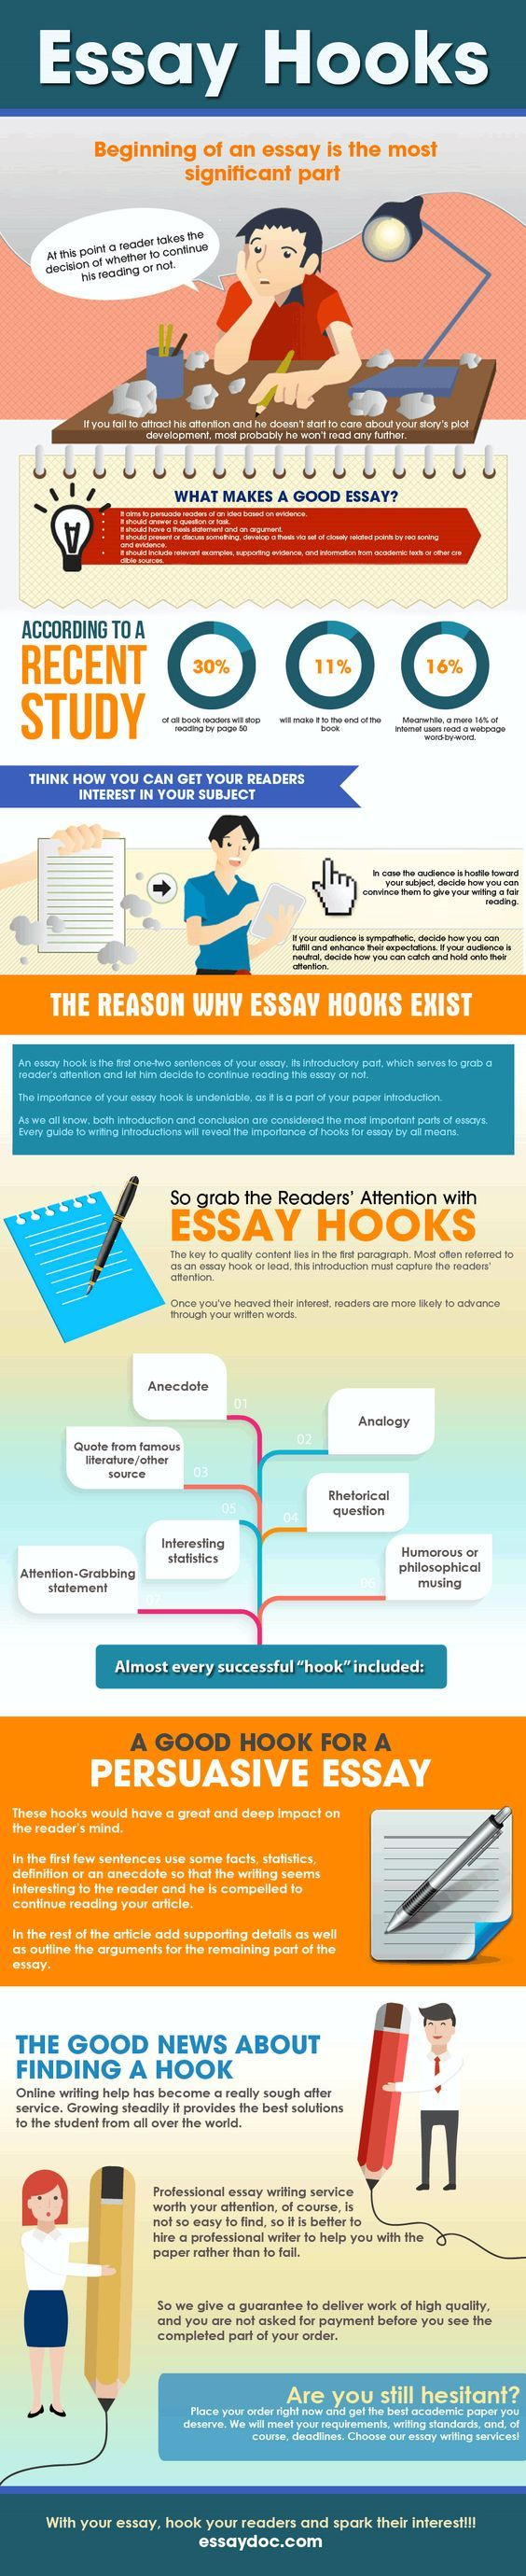 best how to write essay ideas essay writing  nice how to write a cause effect essay definition writing steps argumentative